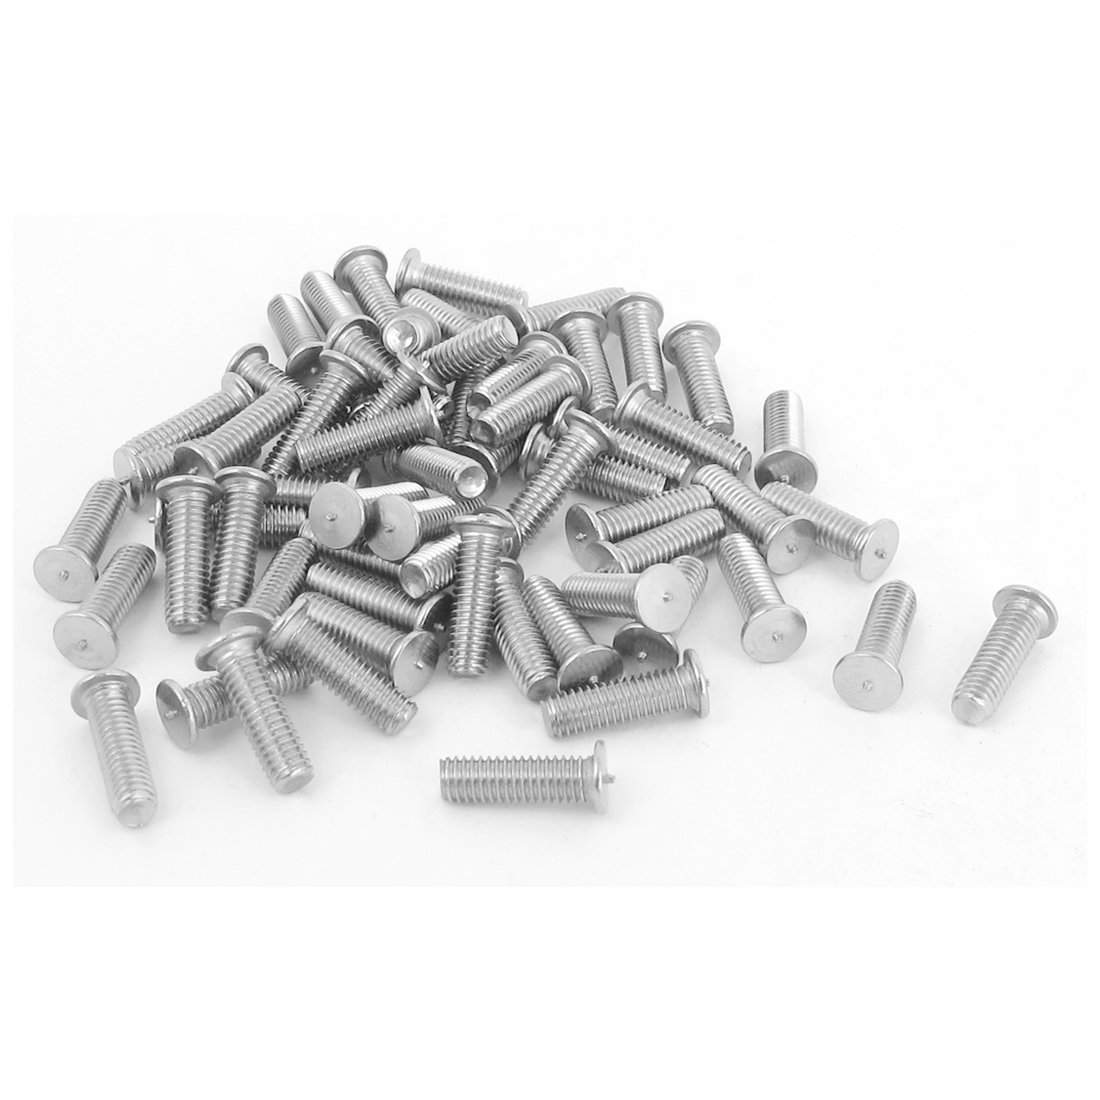 M3x10mm 304 Stainless Steel Welding Stud Machinery Screws w Soldered Dot 100Pcs